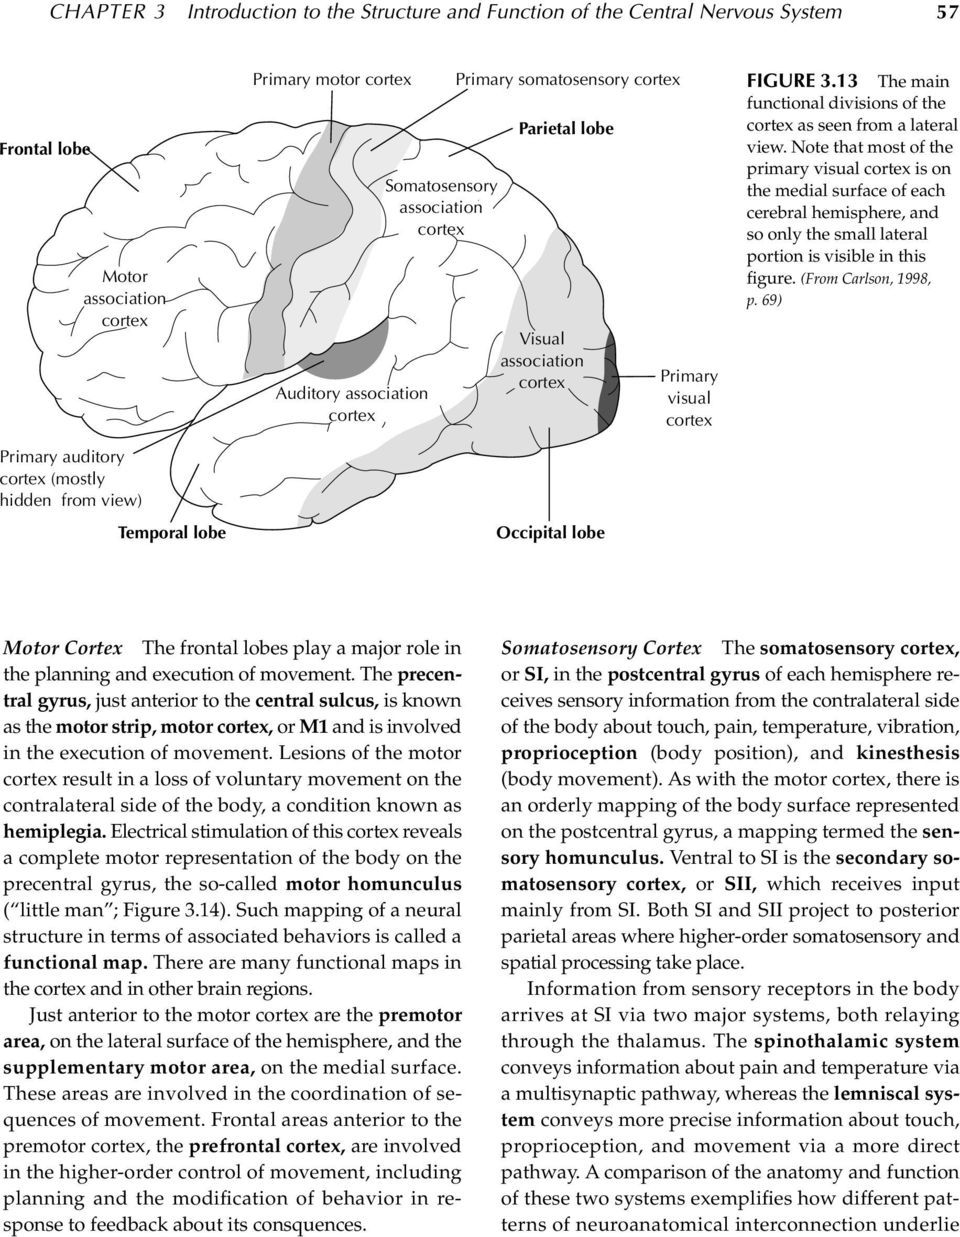 Note that most of the primary visual is on the medial surface of each cerebral hemisphere, and so only the small lateral portion is visible in this figure. (From Carlson, 1998, p.